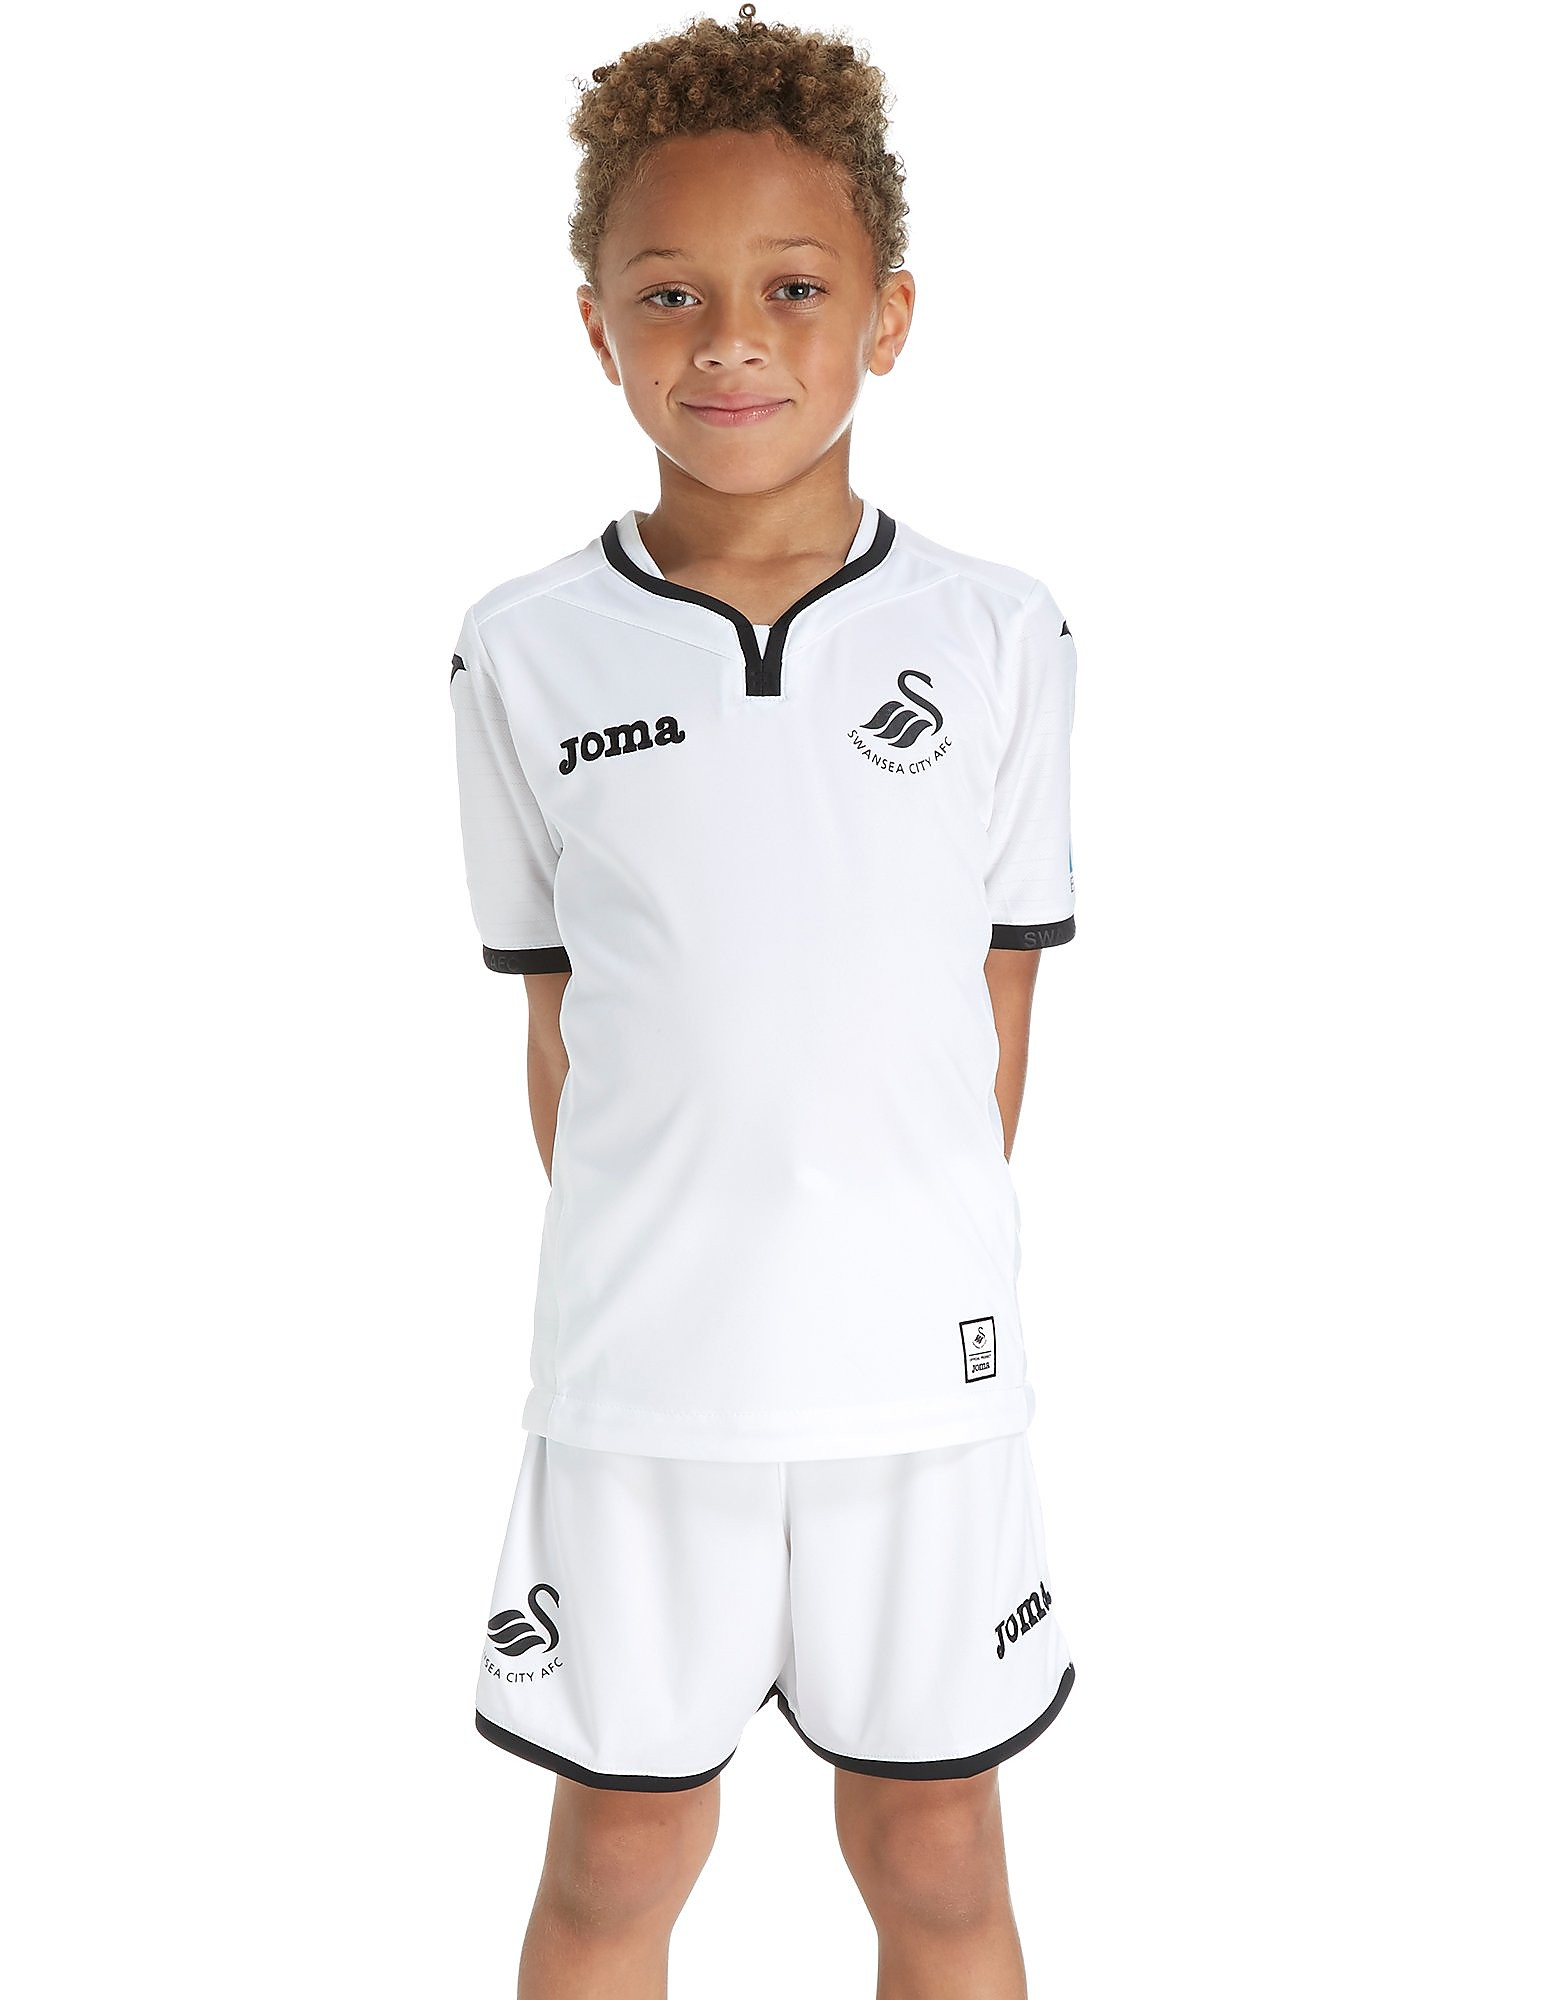 Joma Swansea City FC 2017/18 Home Kit Childrens